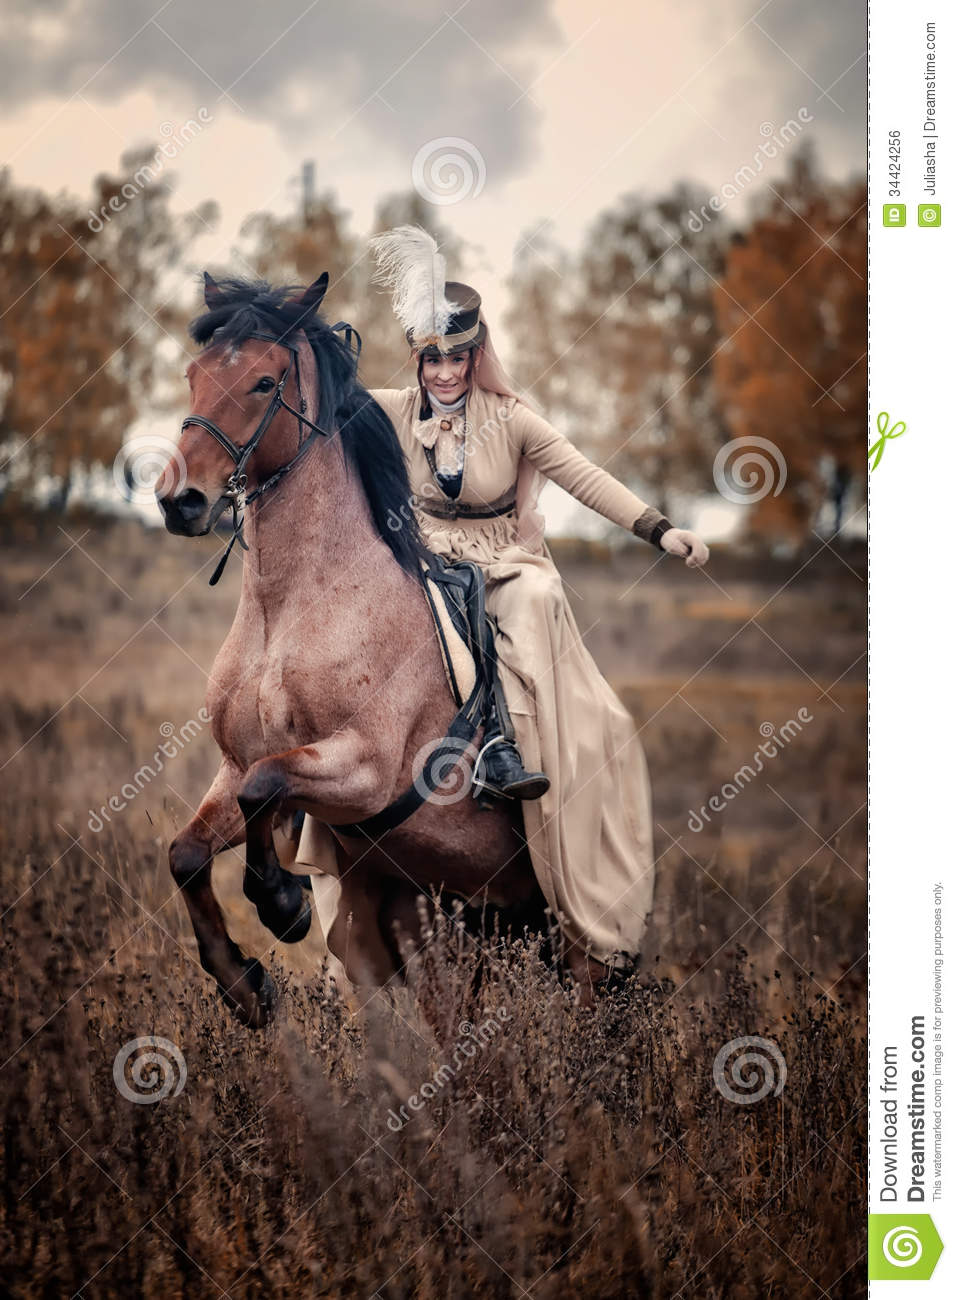 Fall October Wallpaper Horse Hunting With Ladies In Riding Habit Editorial Photo